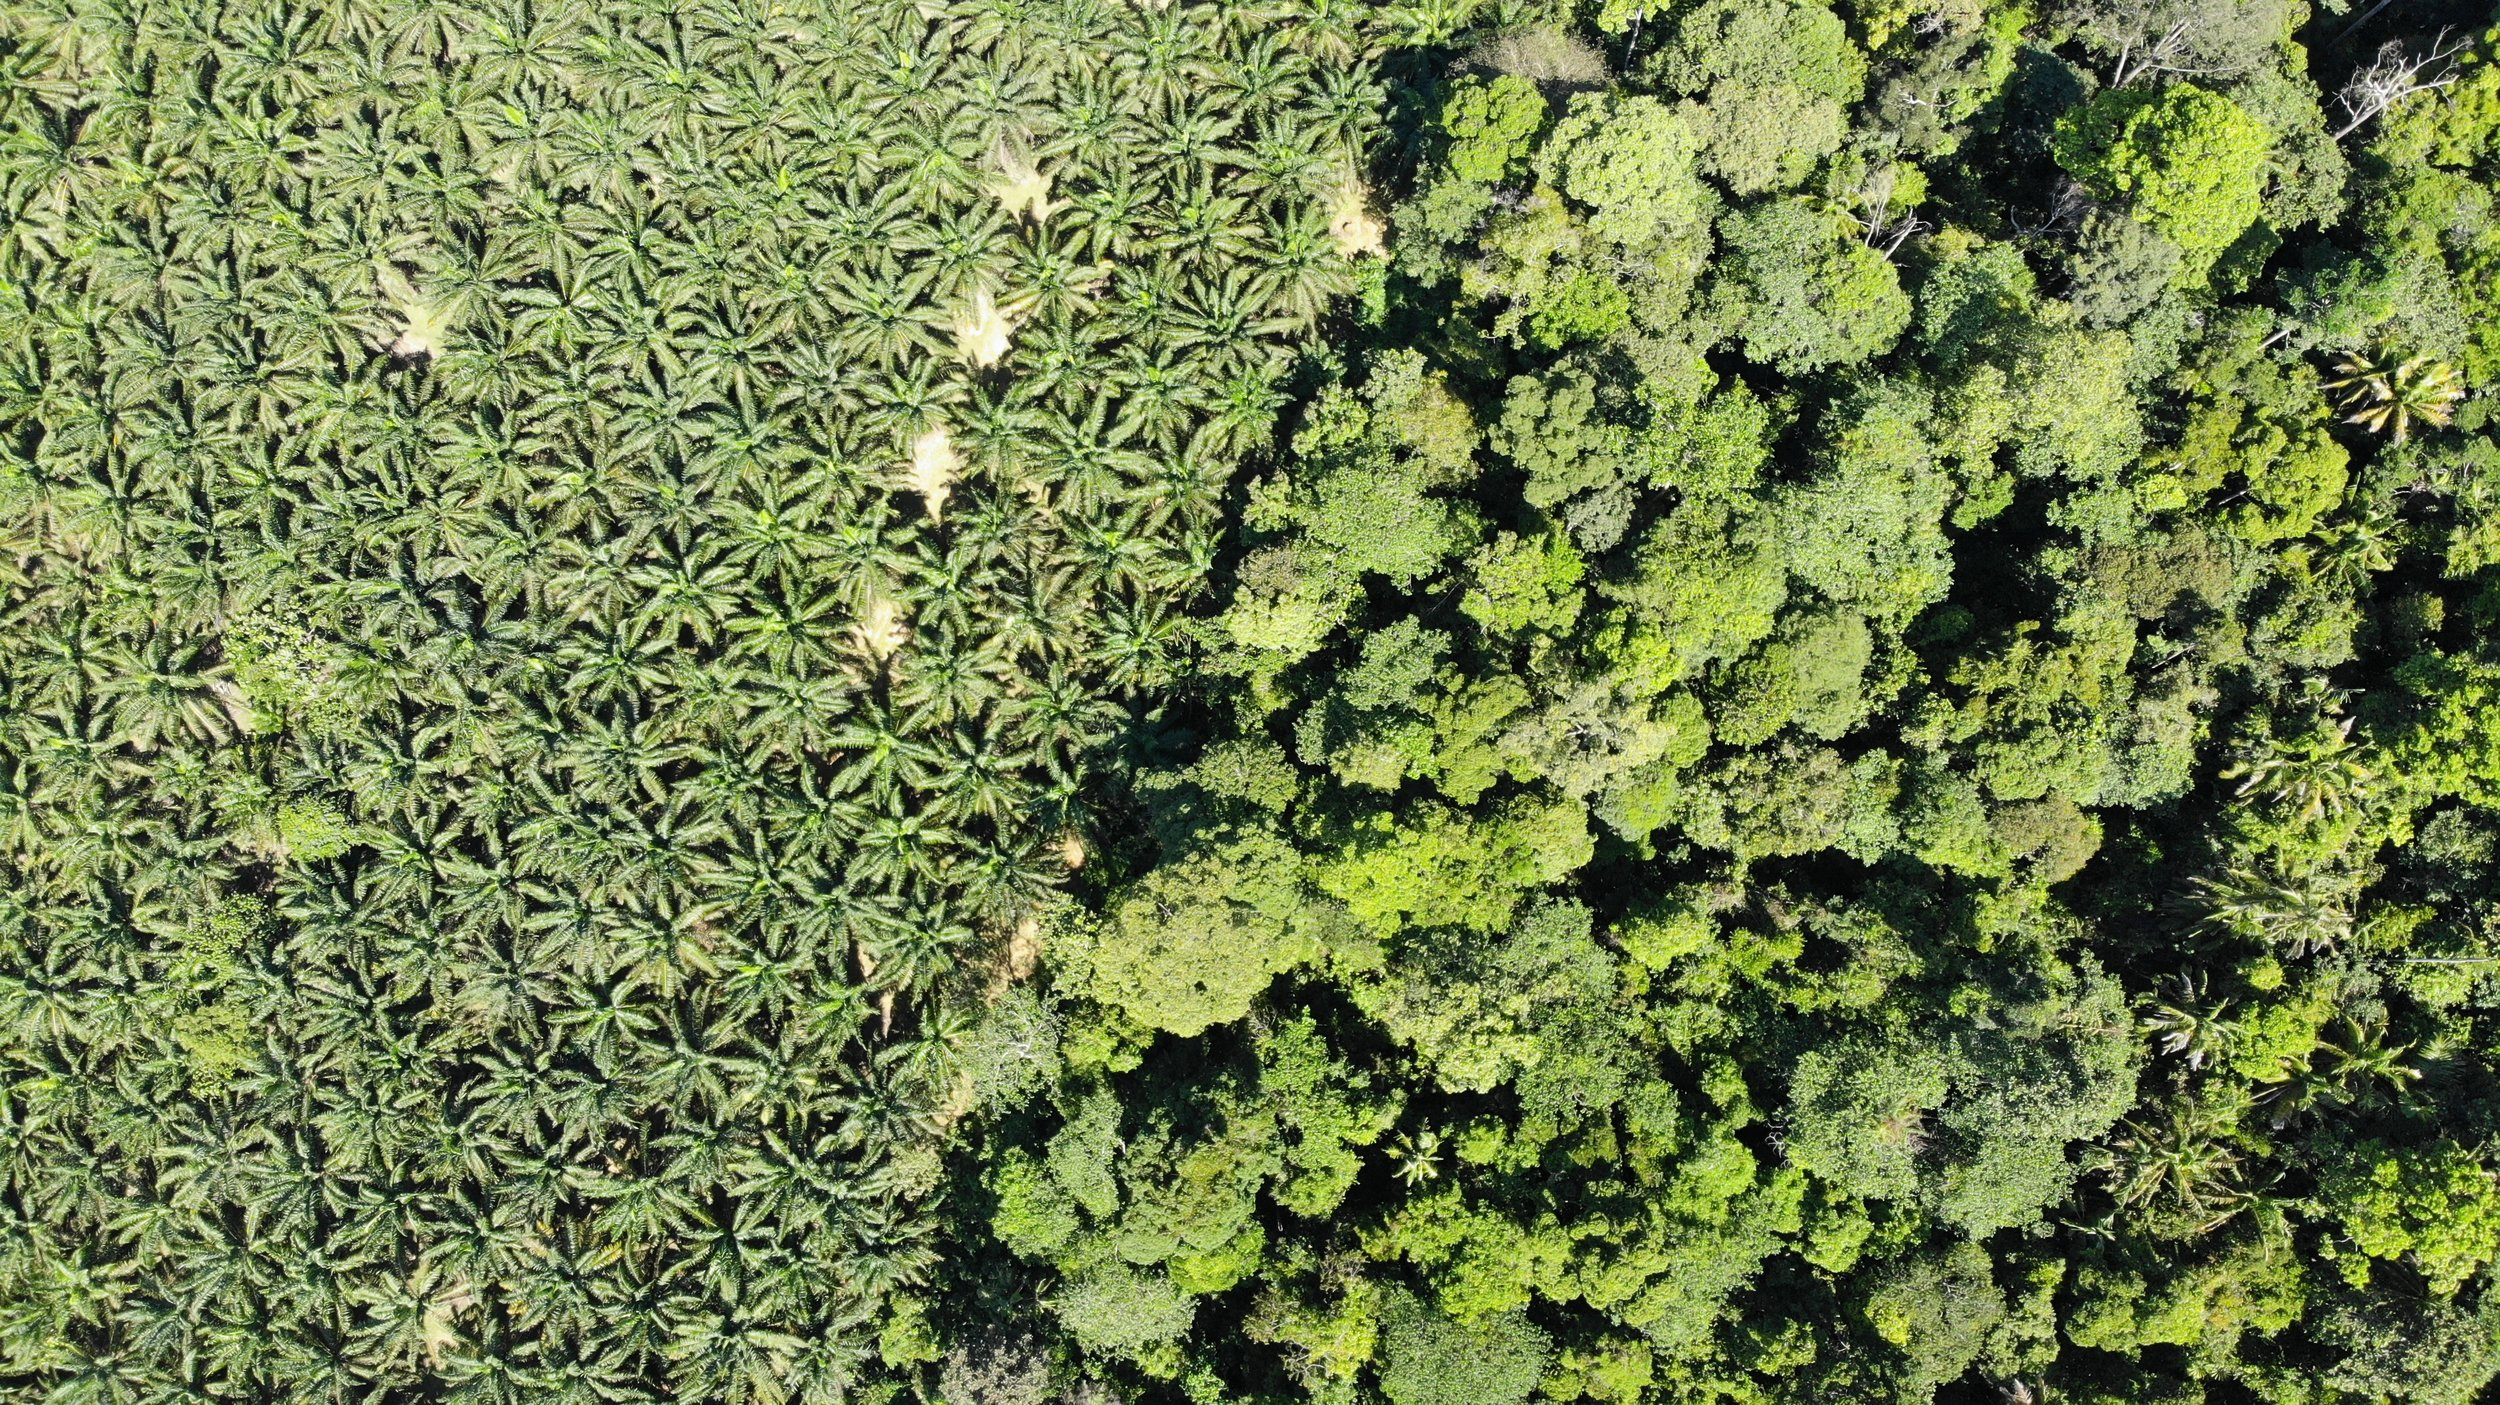 Oil palm — forest boundary (source: Satelligence drone footage)